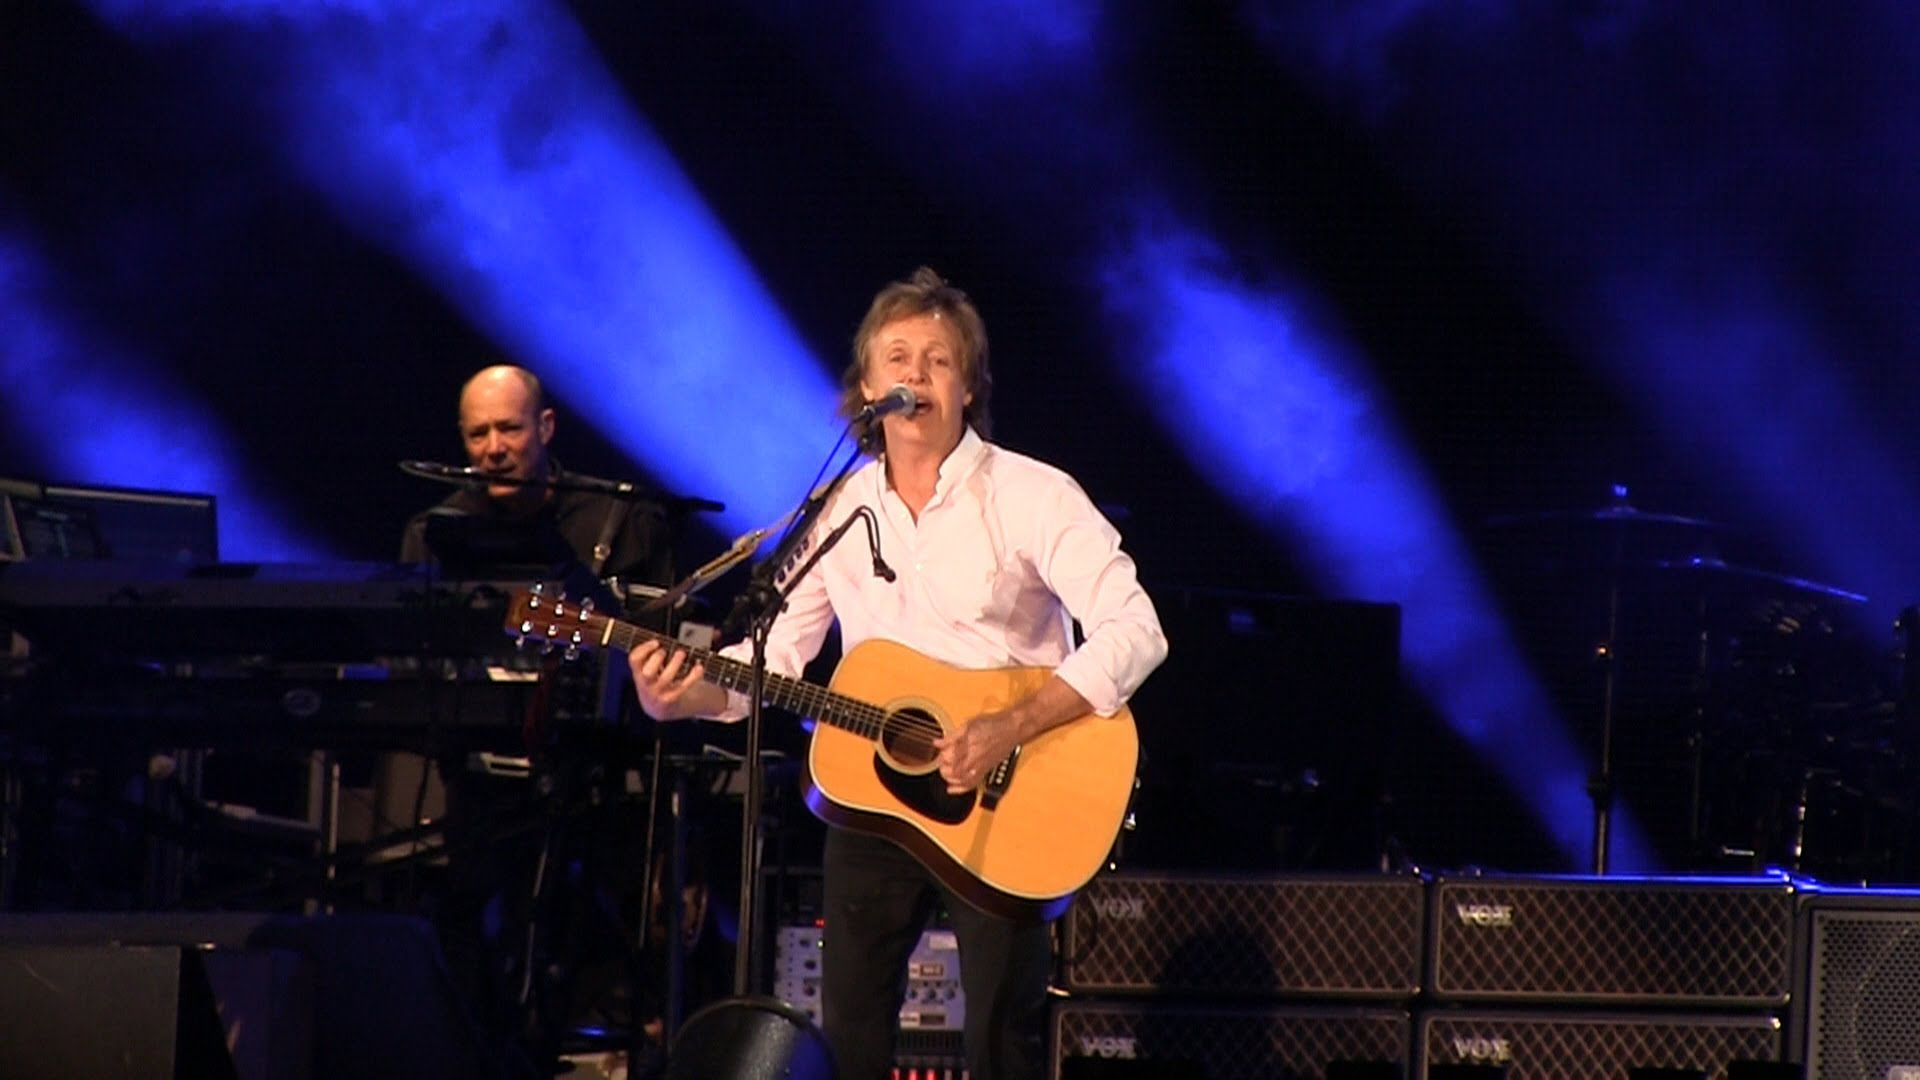 Paul Mccartney Fourfiveseconds We Can Work It Out Lollapalooza Paul Mccartney Songwriting Mccartney